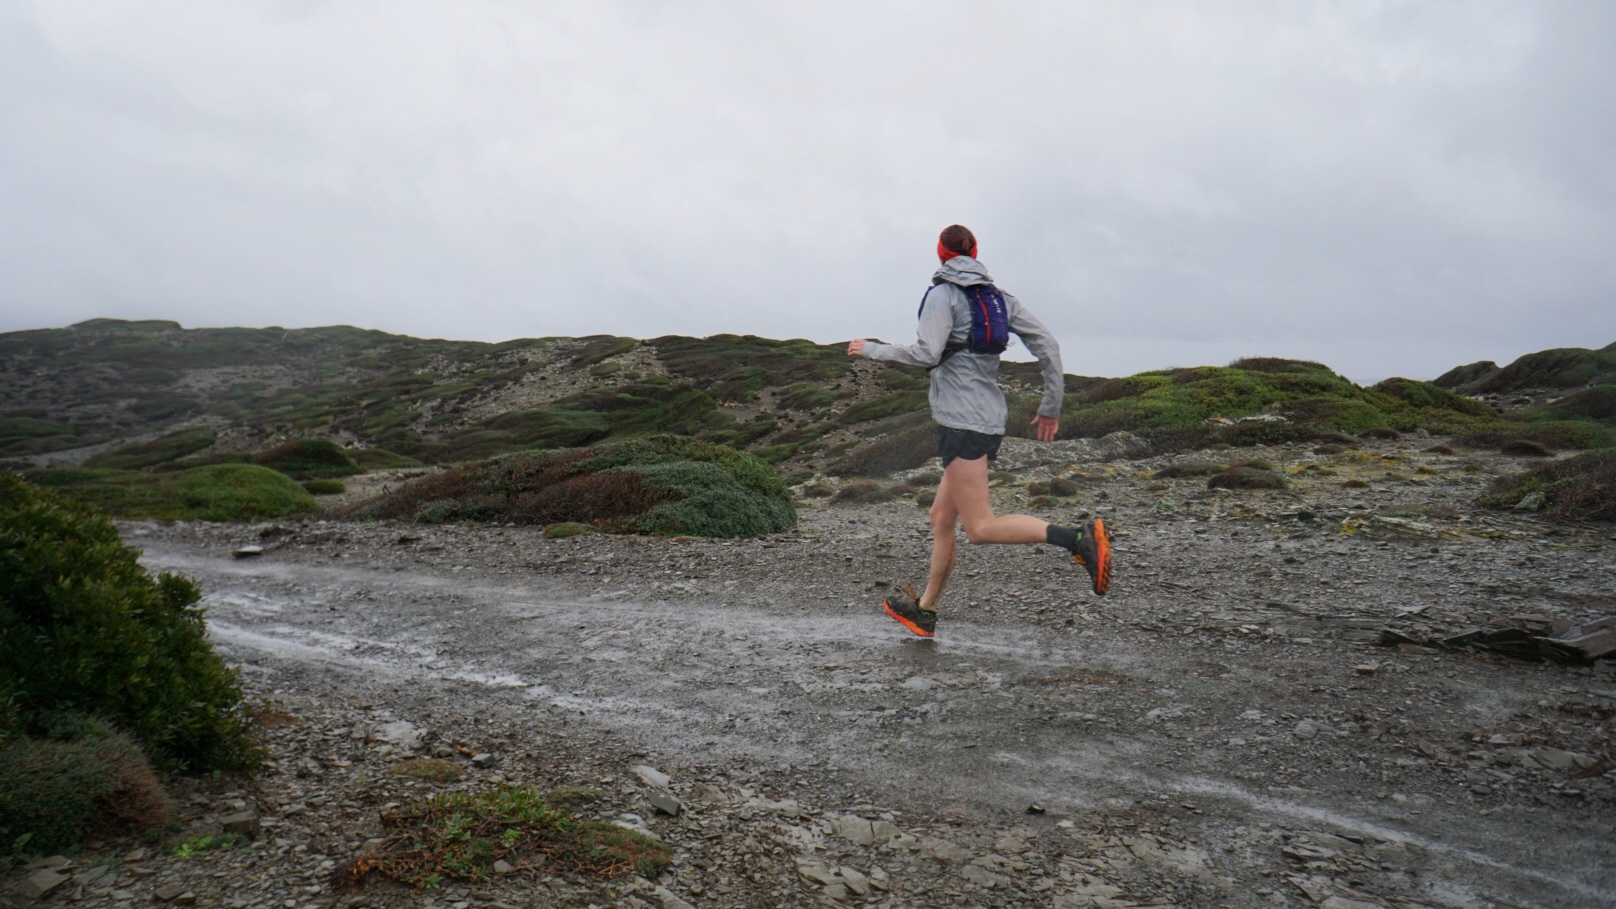 Adjustable hood and velcro cuffs keep the worst of the weather out during the Cami de Cavalls three day trail race